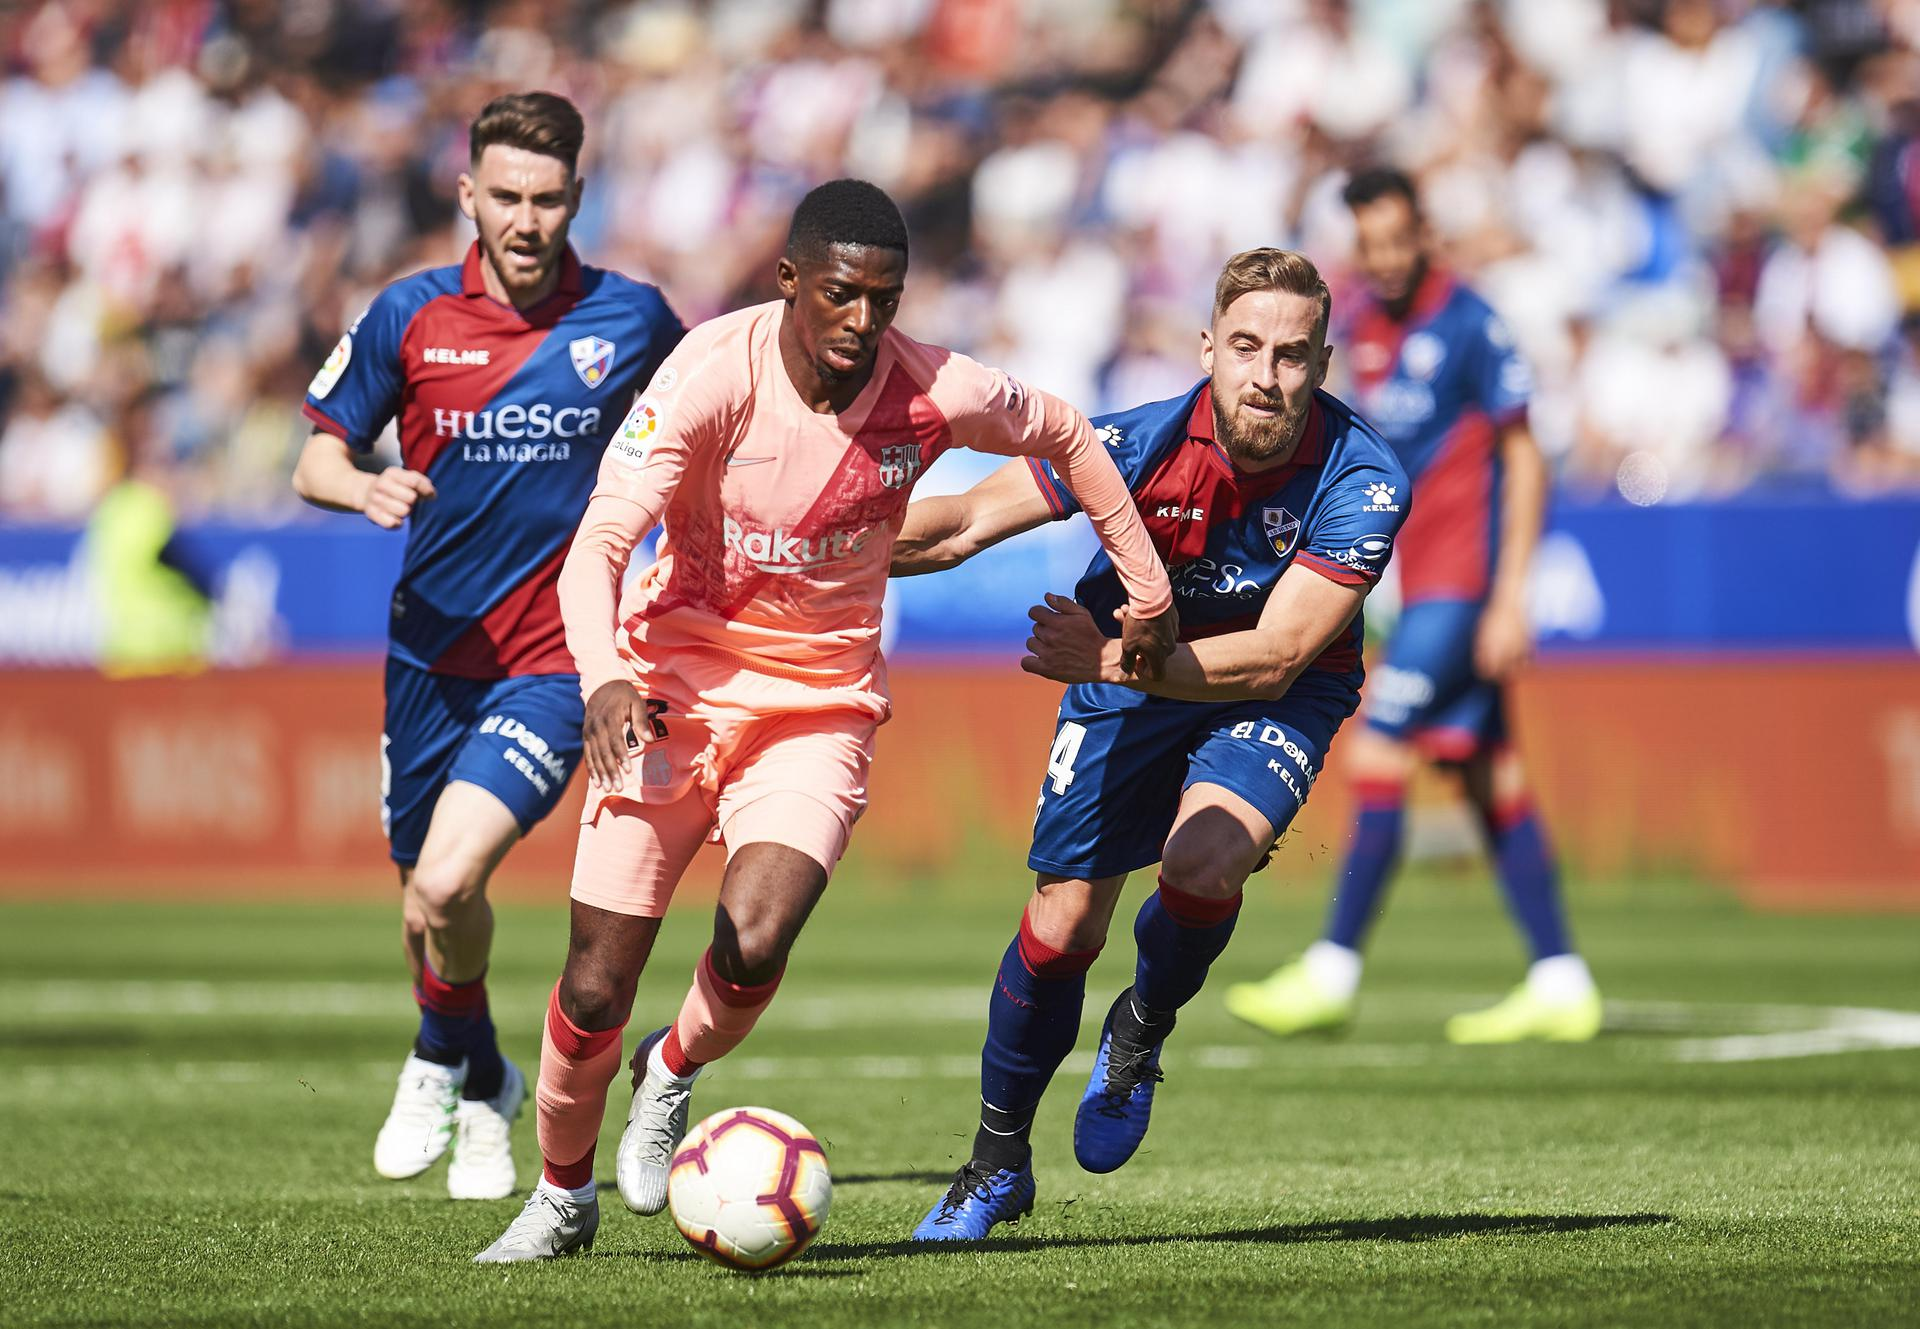 Ousmane Dembele in action for Barcelona away to Huesca